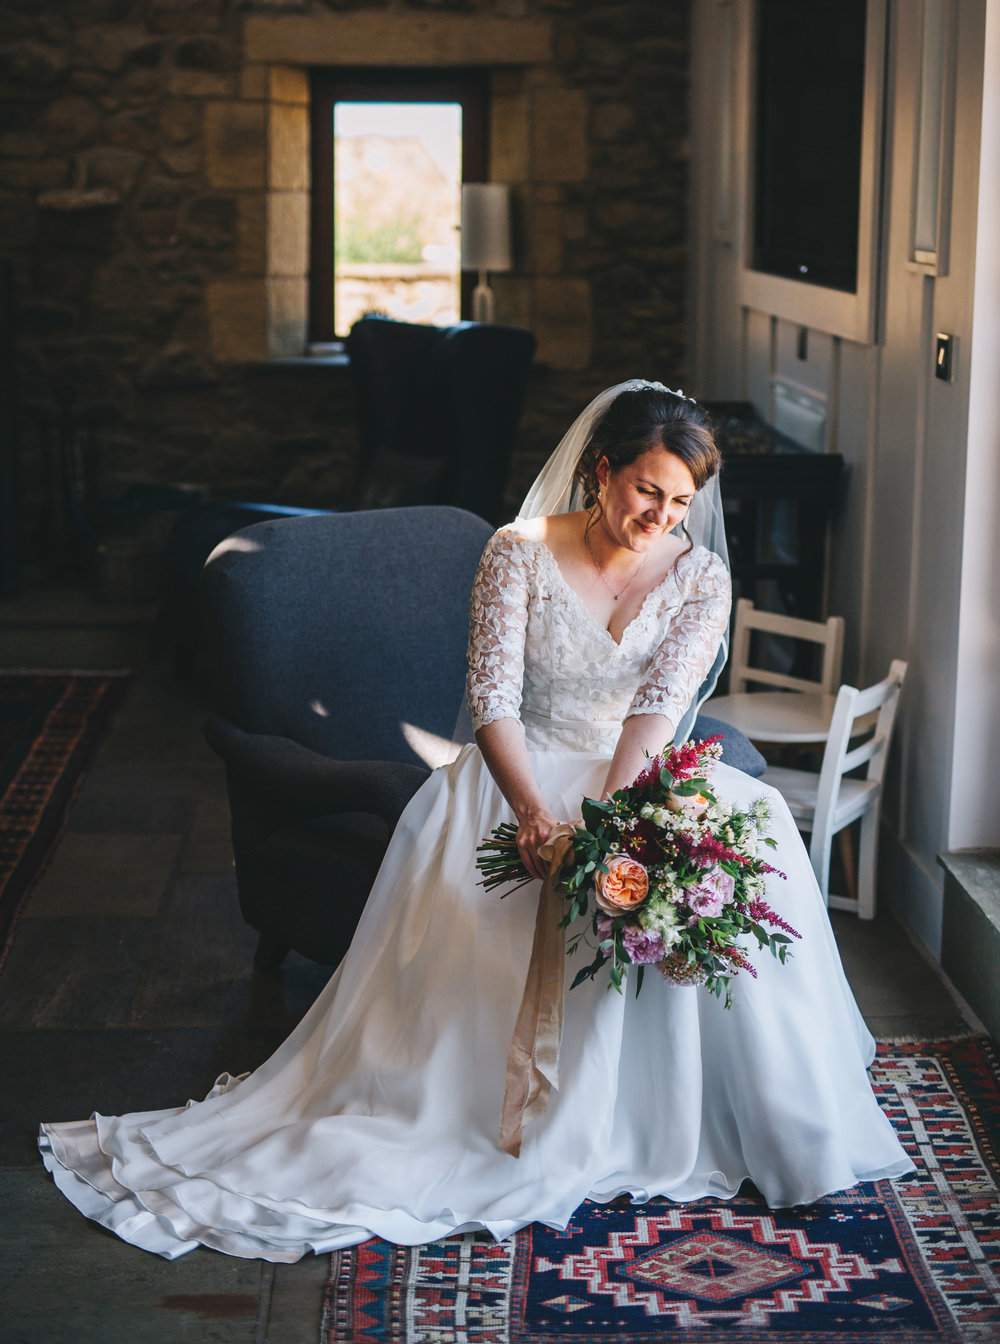 The bride and her bouquet, Rustic themed wedding.